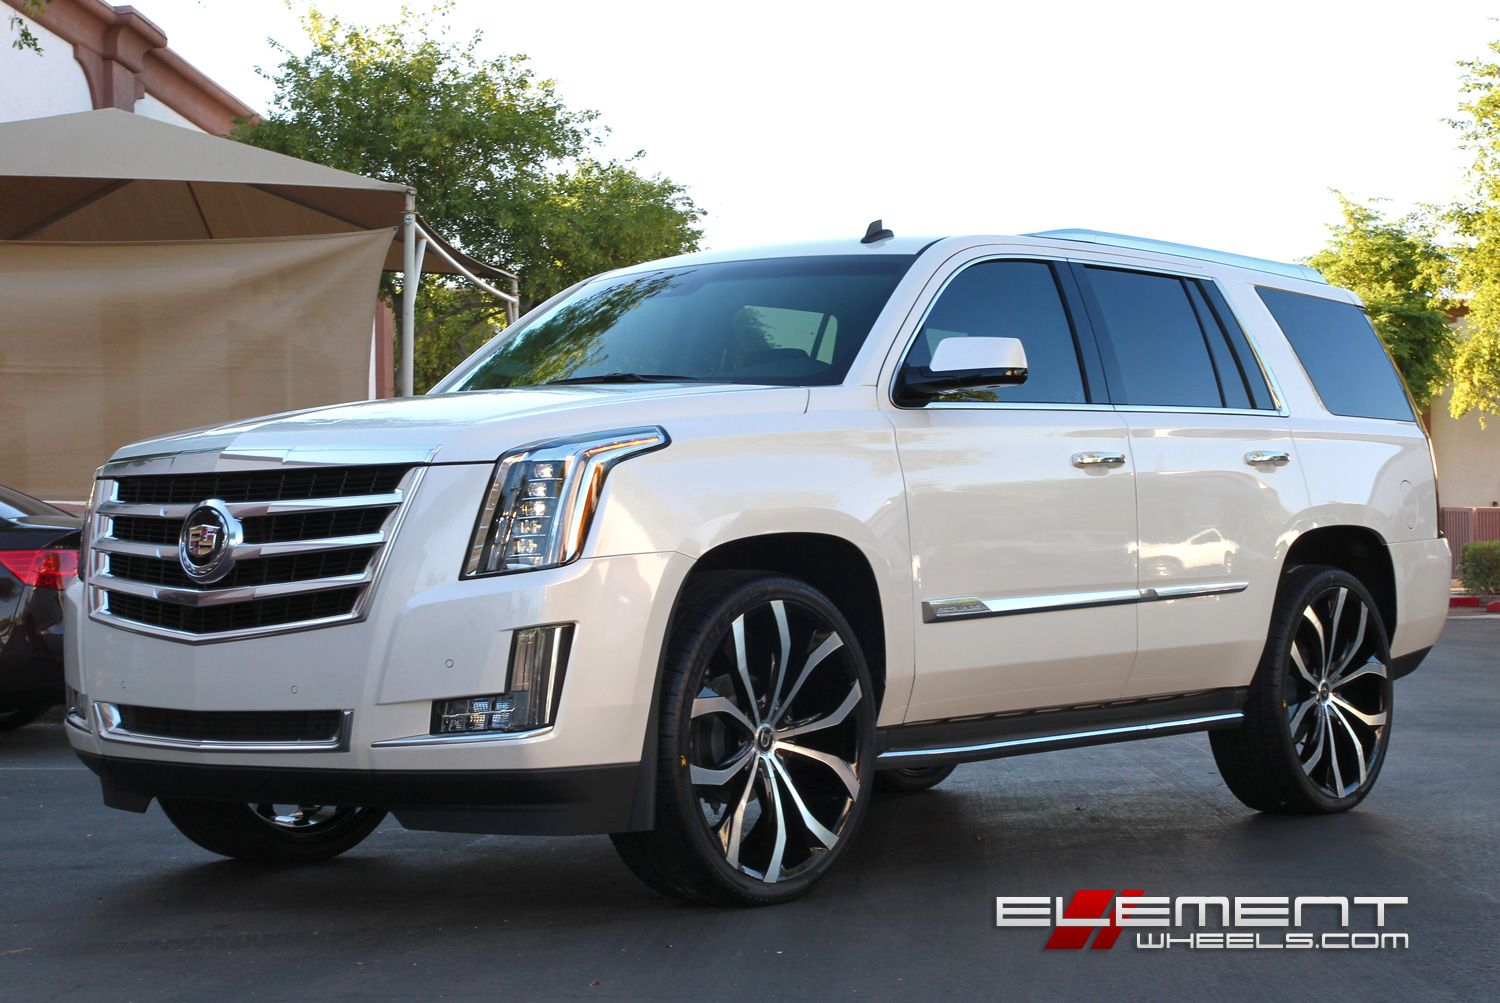 2016 cadillac escalade vsport wheel wonders 2000 s pinterest cadillac escalade cadillac and cars